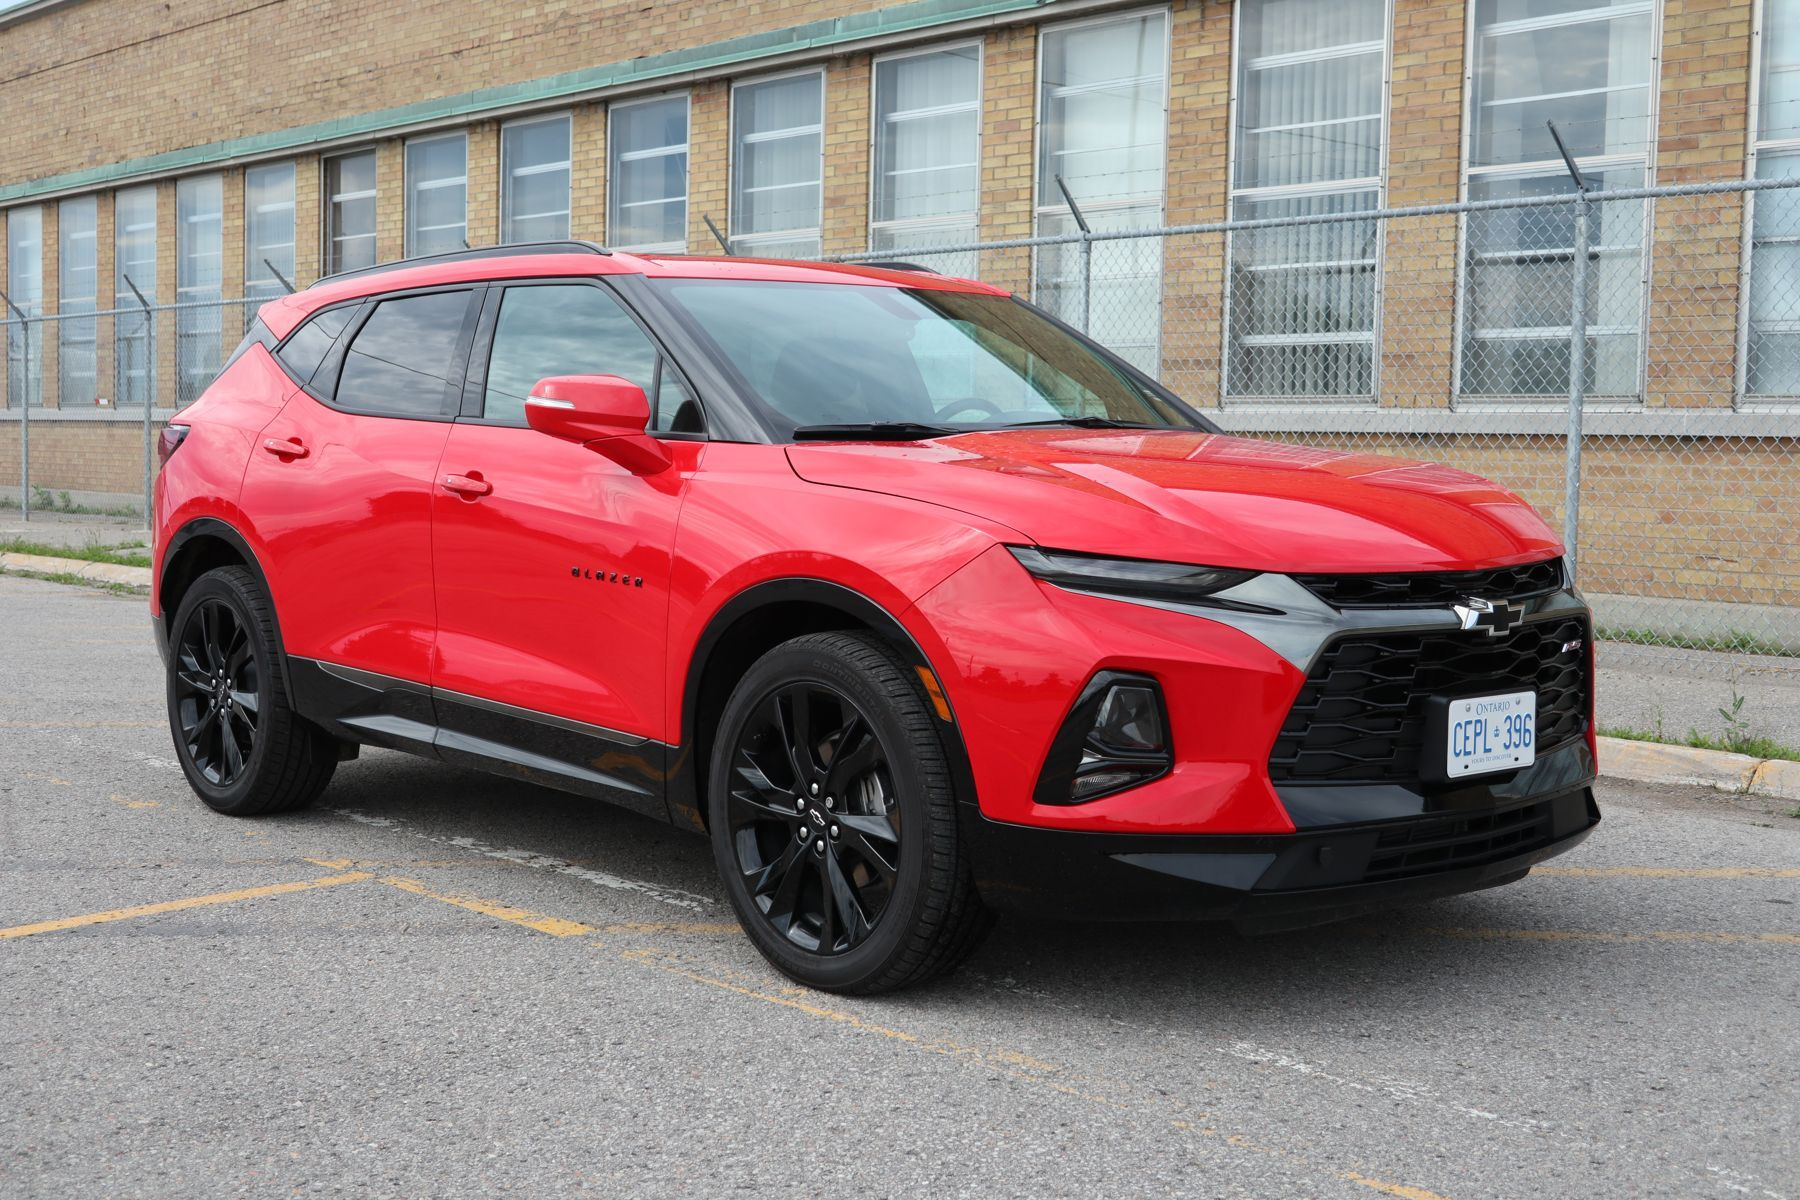 SUV Review: 2019 Chevrolet Blazer RS